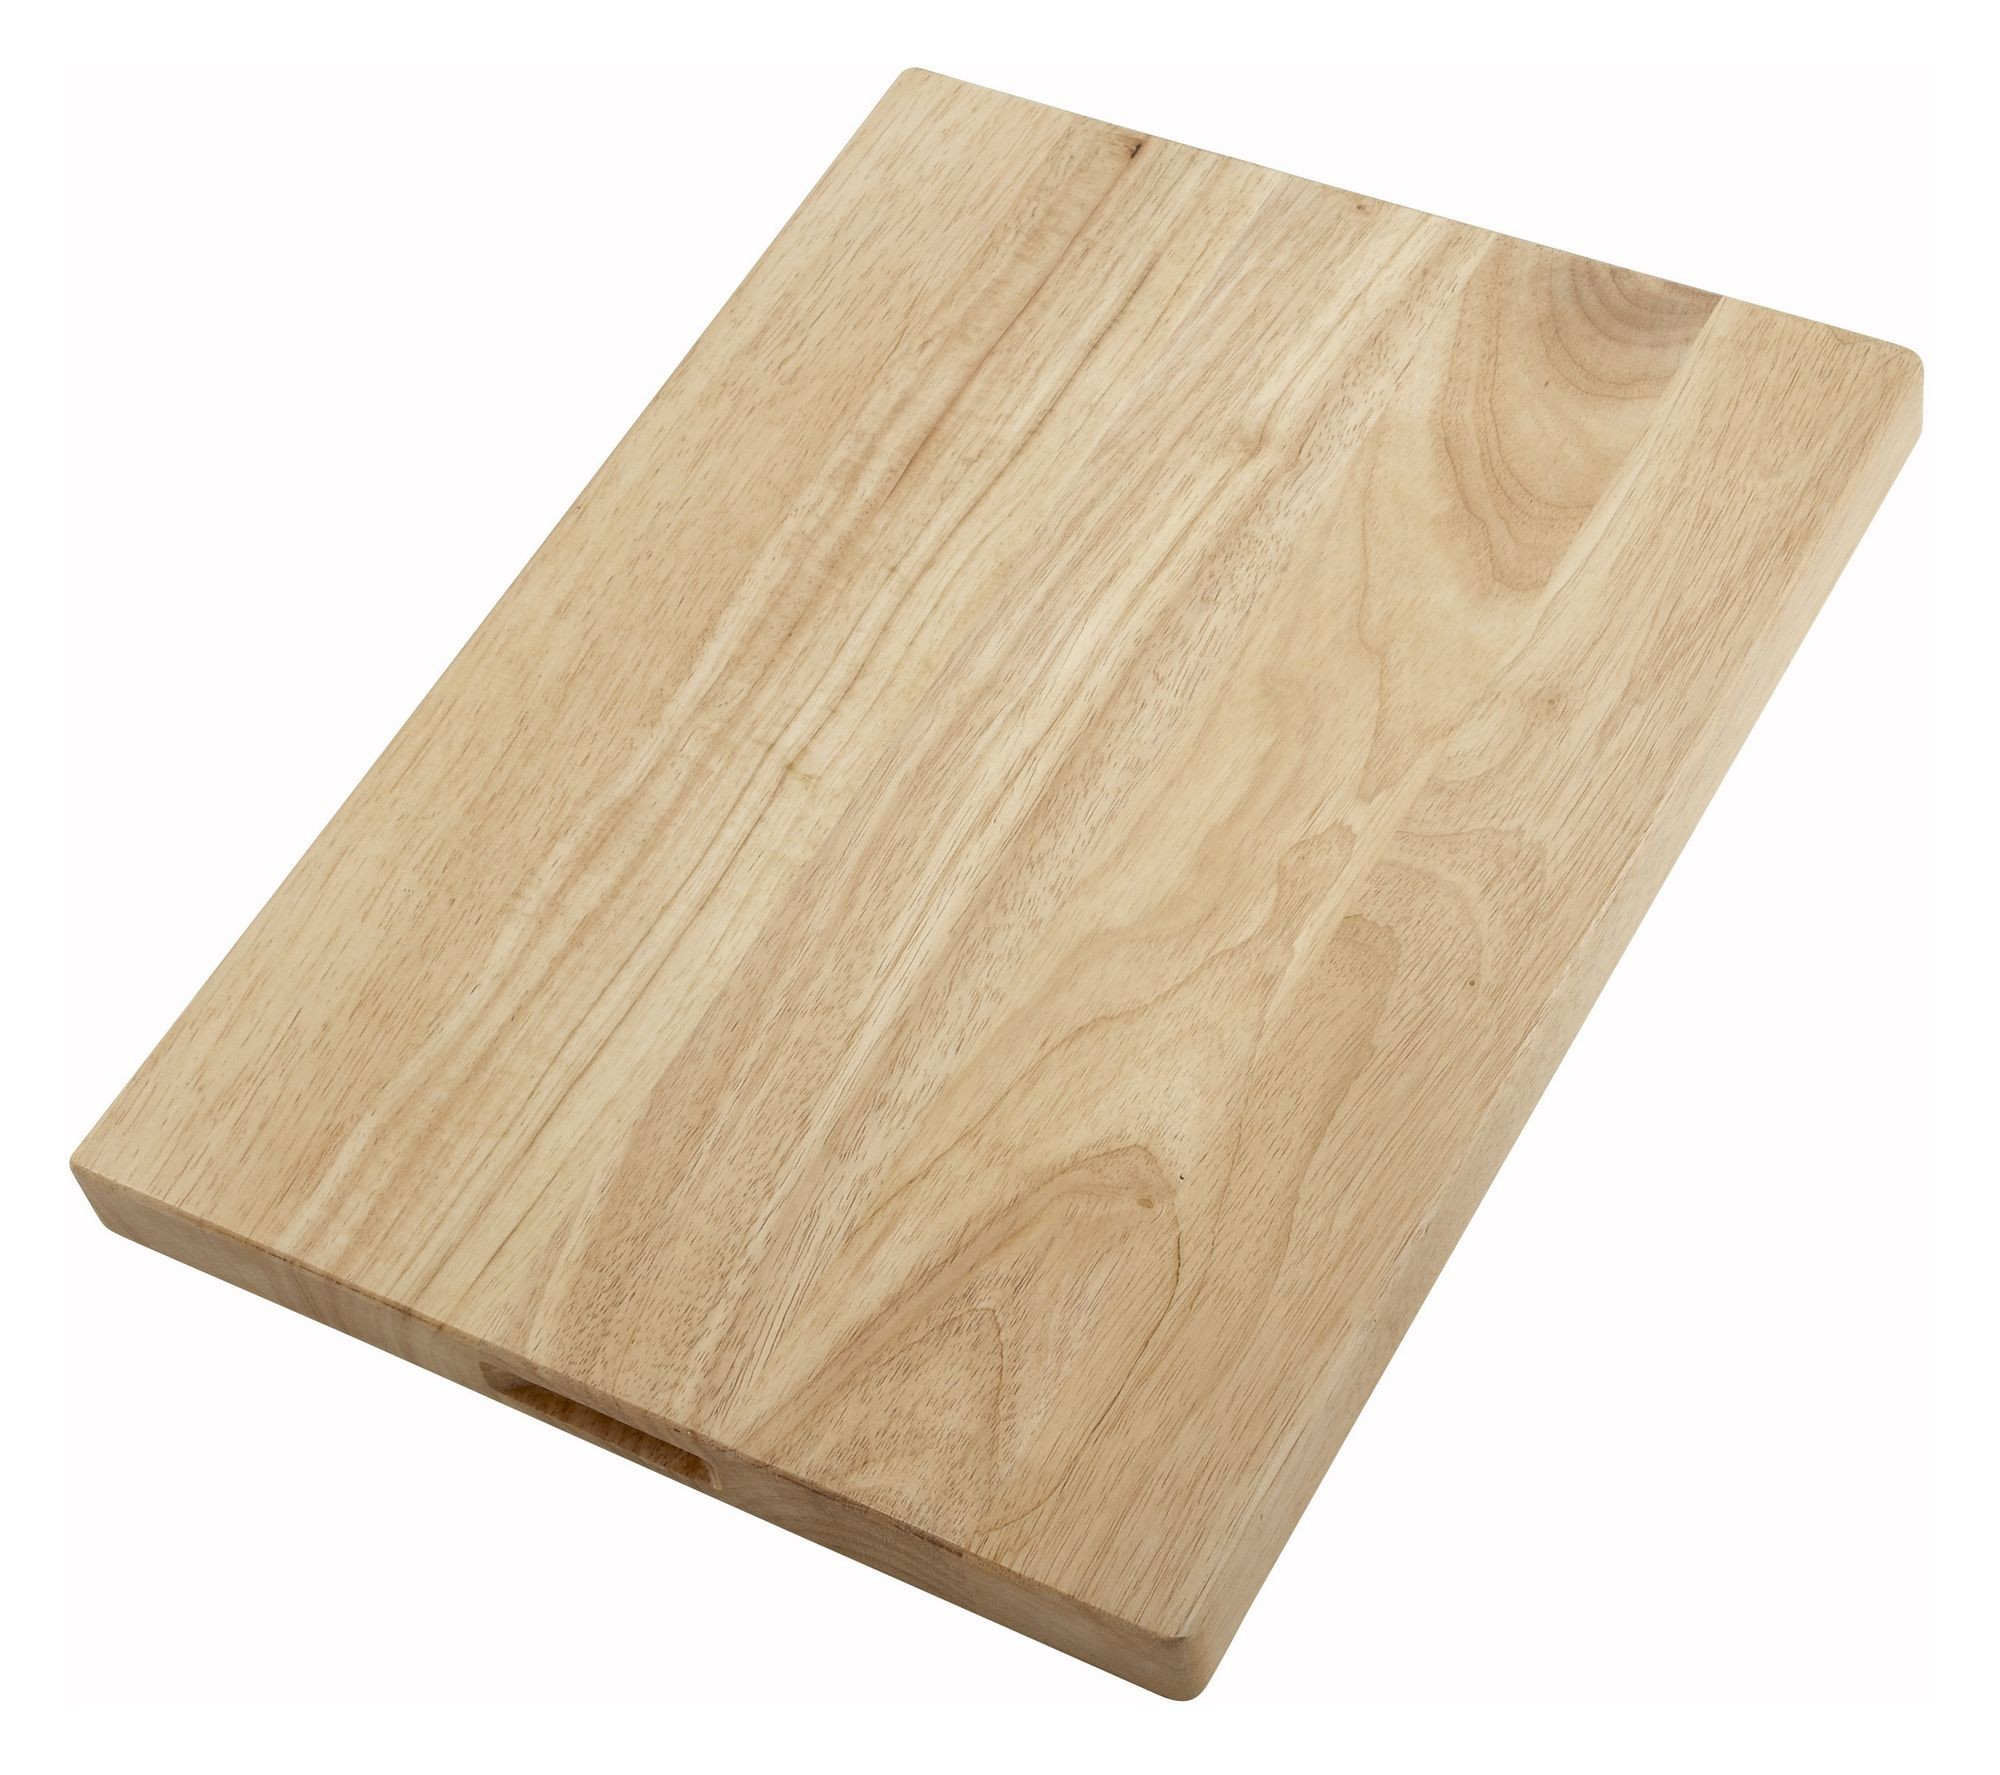 Wood Cutting Board 18 Quot X 30 Quot X 1 3 4 Quot Thick Lionsdeal